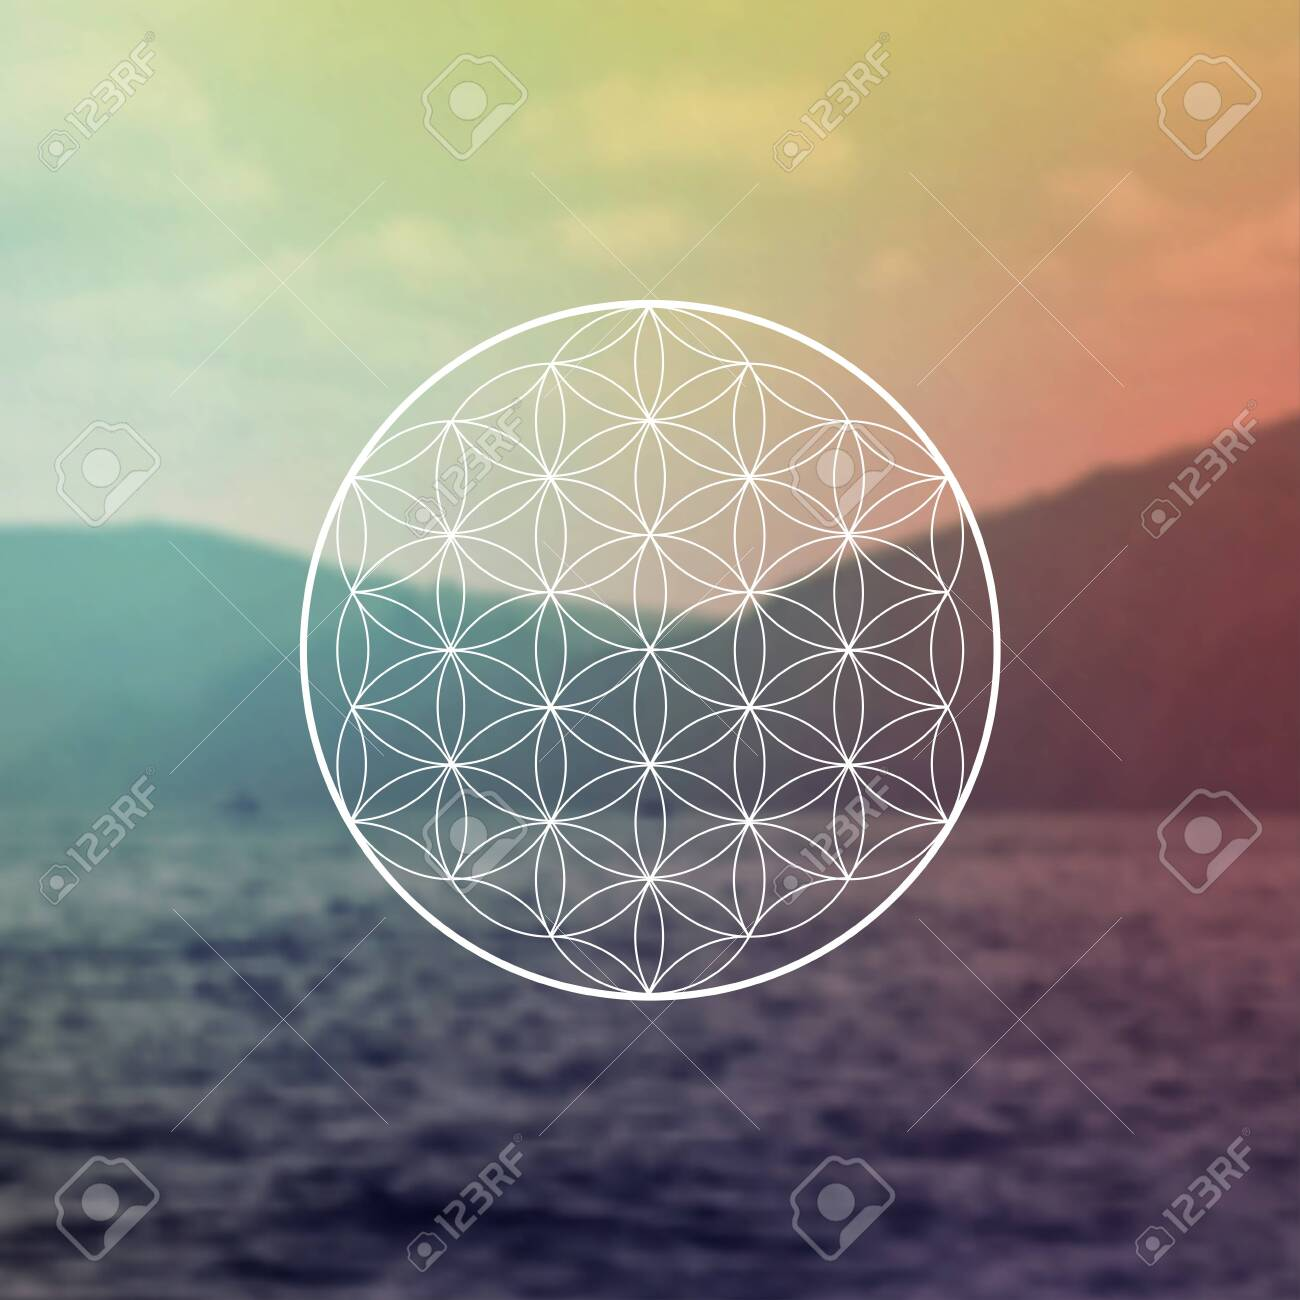 Flower of life sacred geometry illustration with intelocking circles and light dots in front of photographic background. Hipster tree of life sci fi art - 153198306